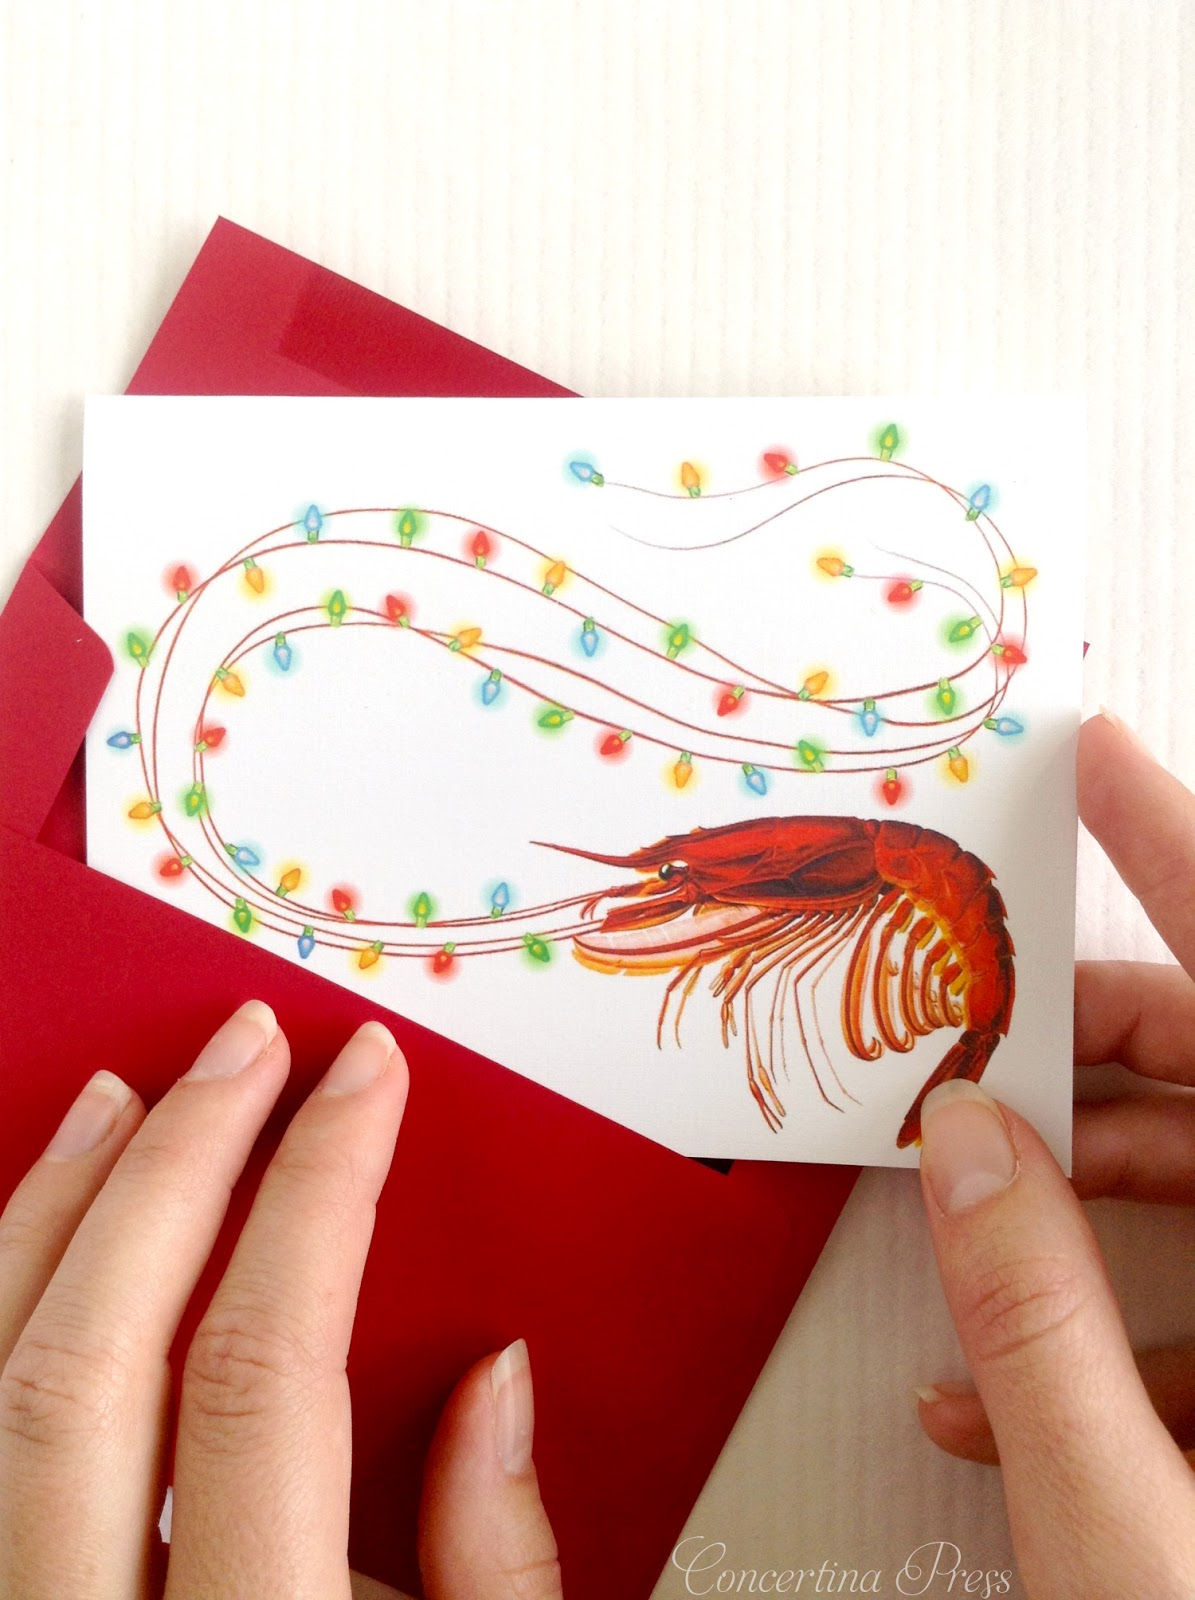 Shrimp Holiday Cards from Concertina Press made in Florida